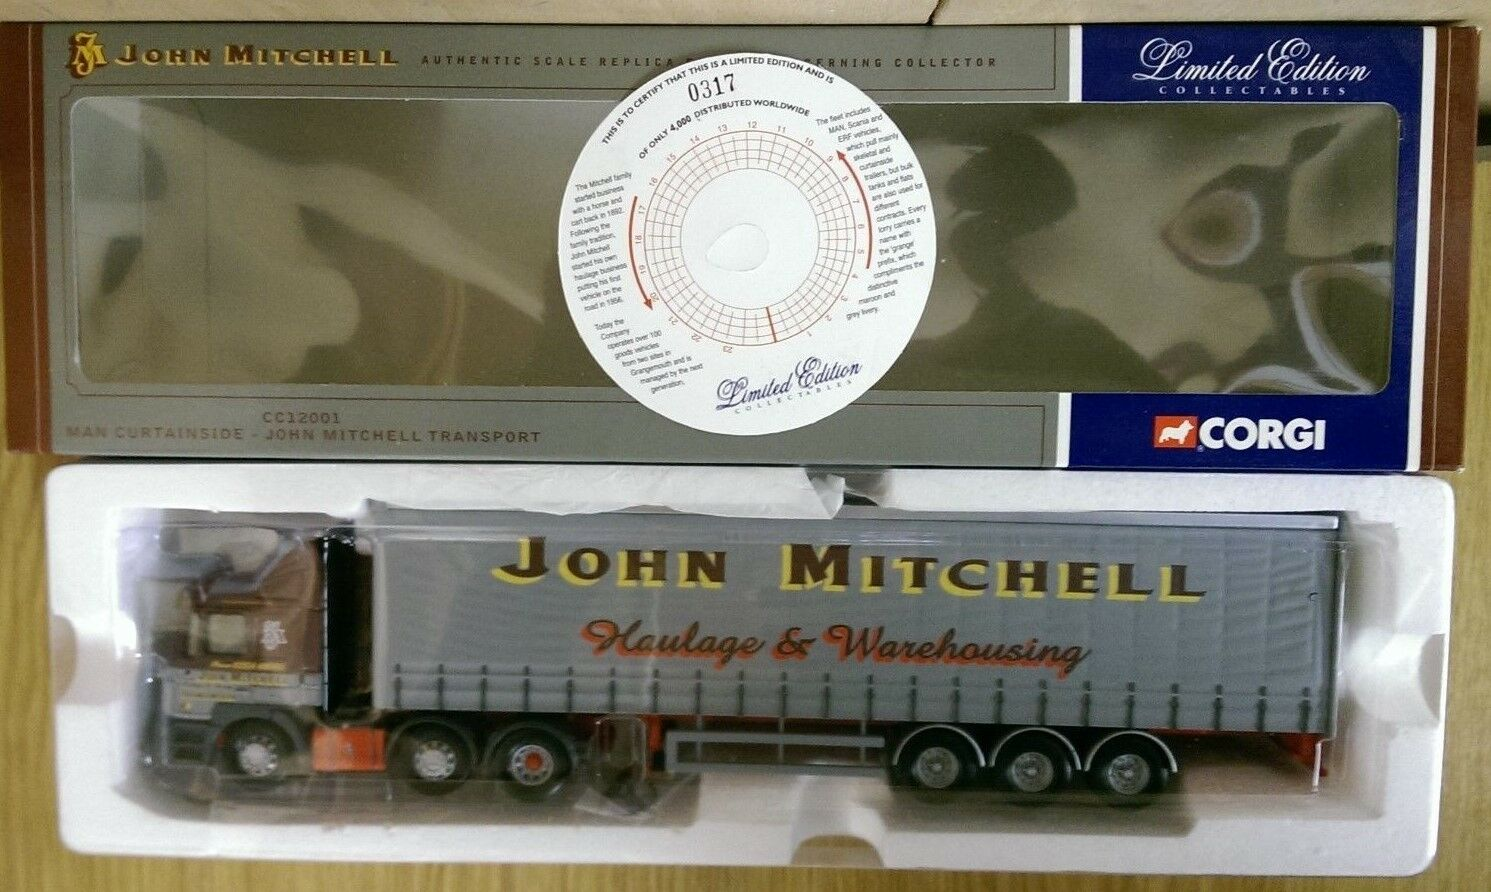 Corgi cc12001 mann curtainside john mitchell transport ltd. 0317 von 4000.